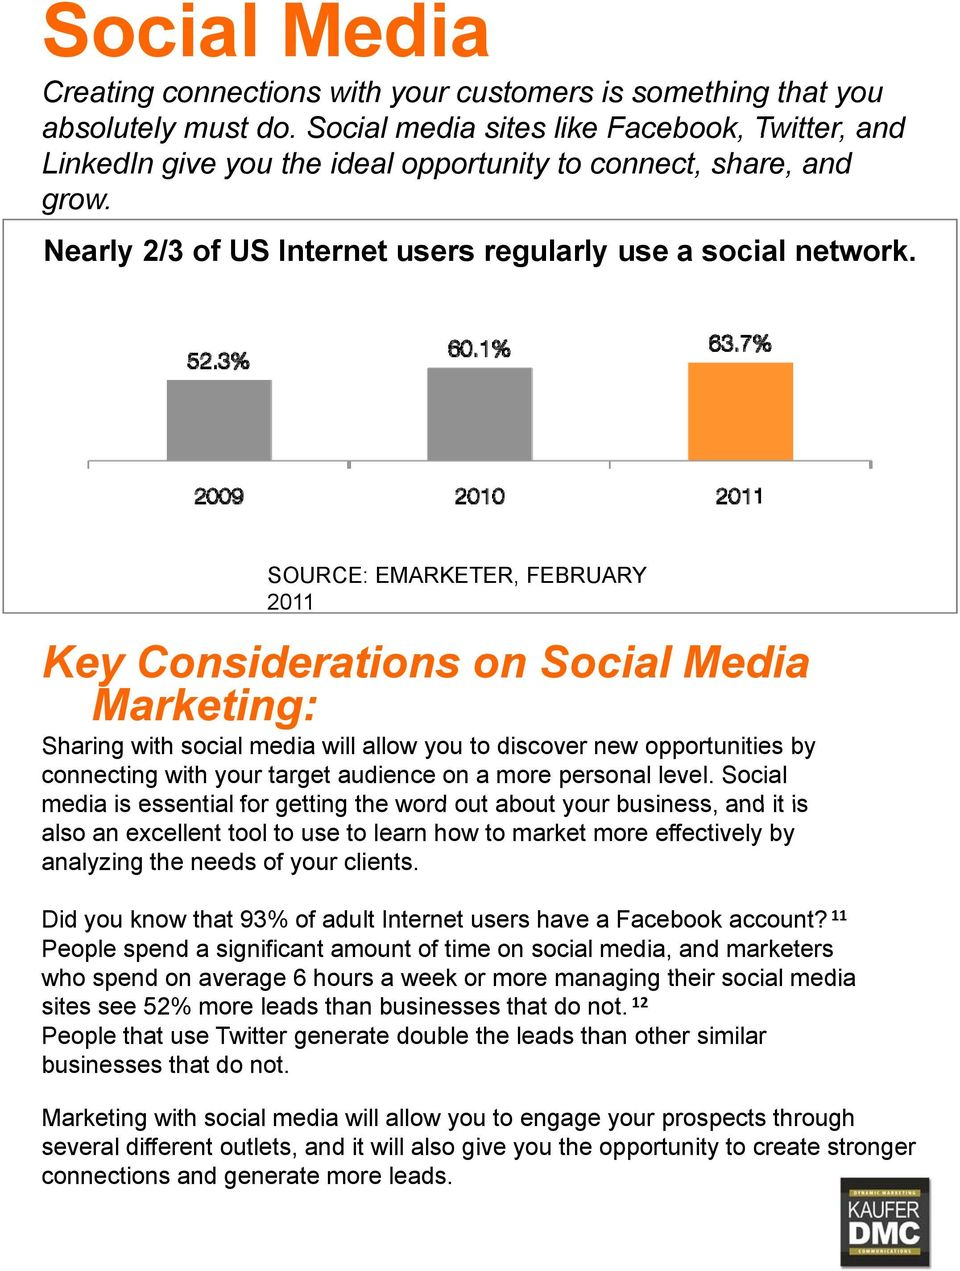 SOURCE: EMARKETER, FEBRUARY 2011 Key Considerations on Social Media Marketing: Sharing with social media will allow you to discover new opportunities by connecting with your target audience on a more